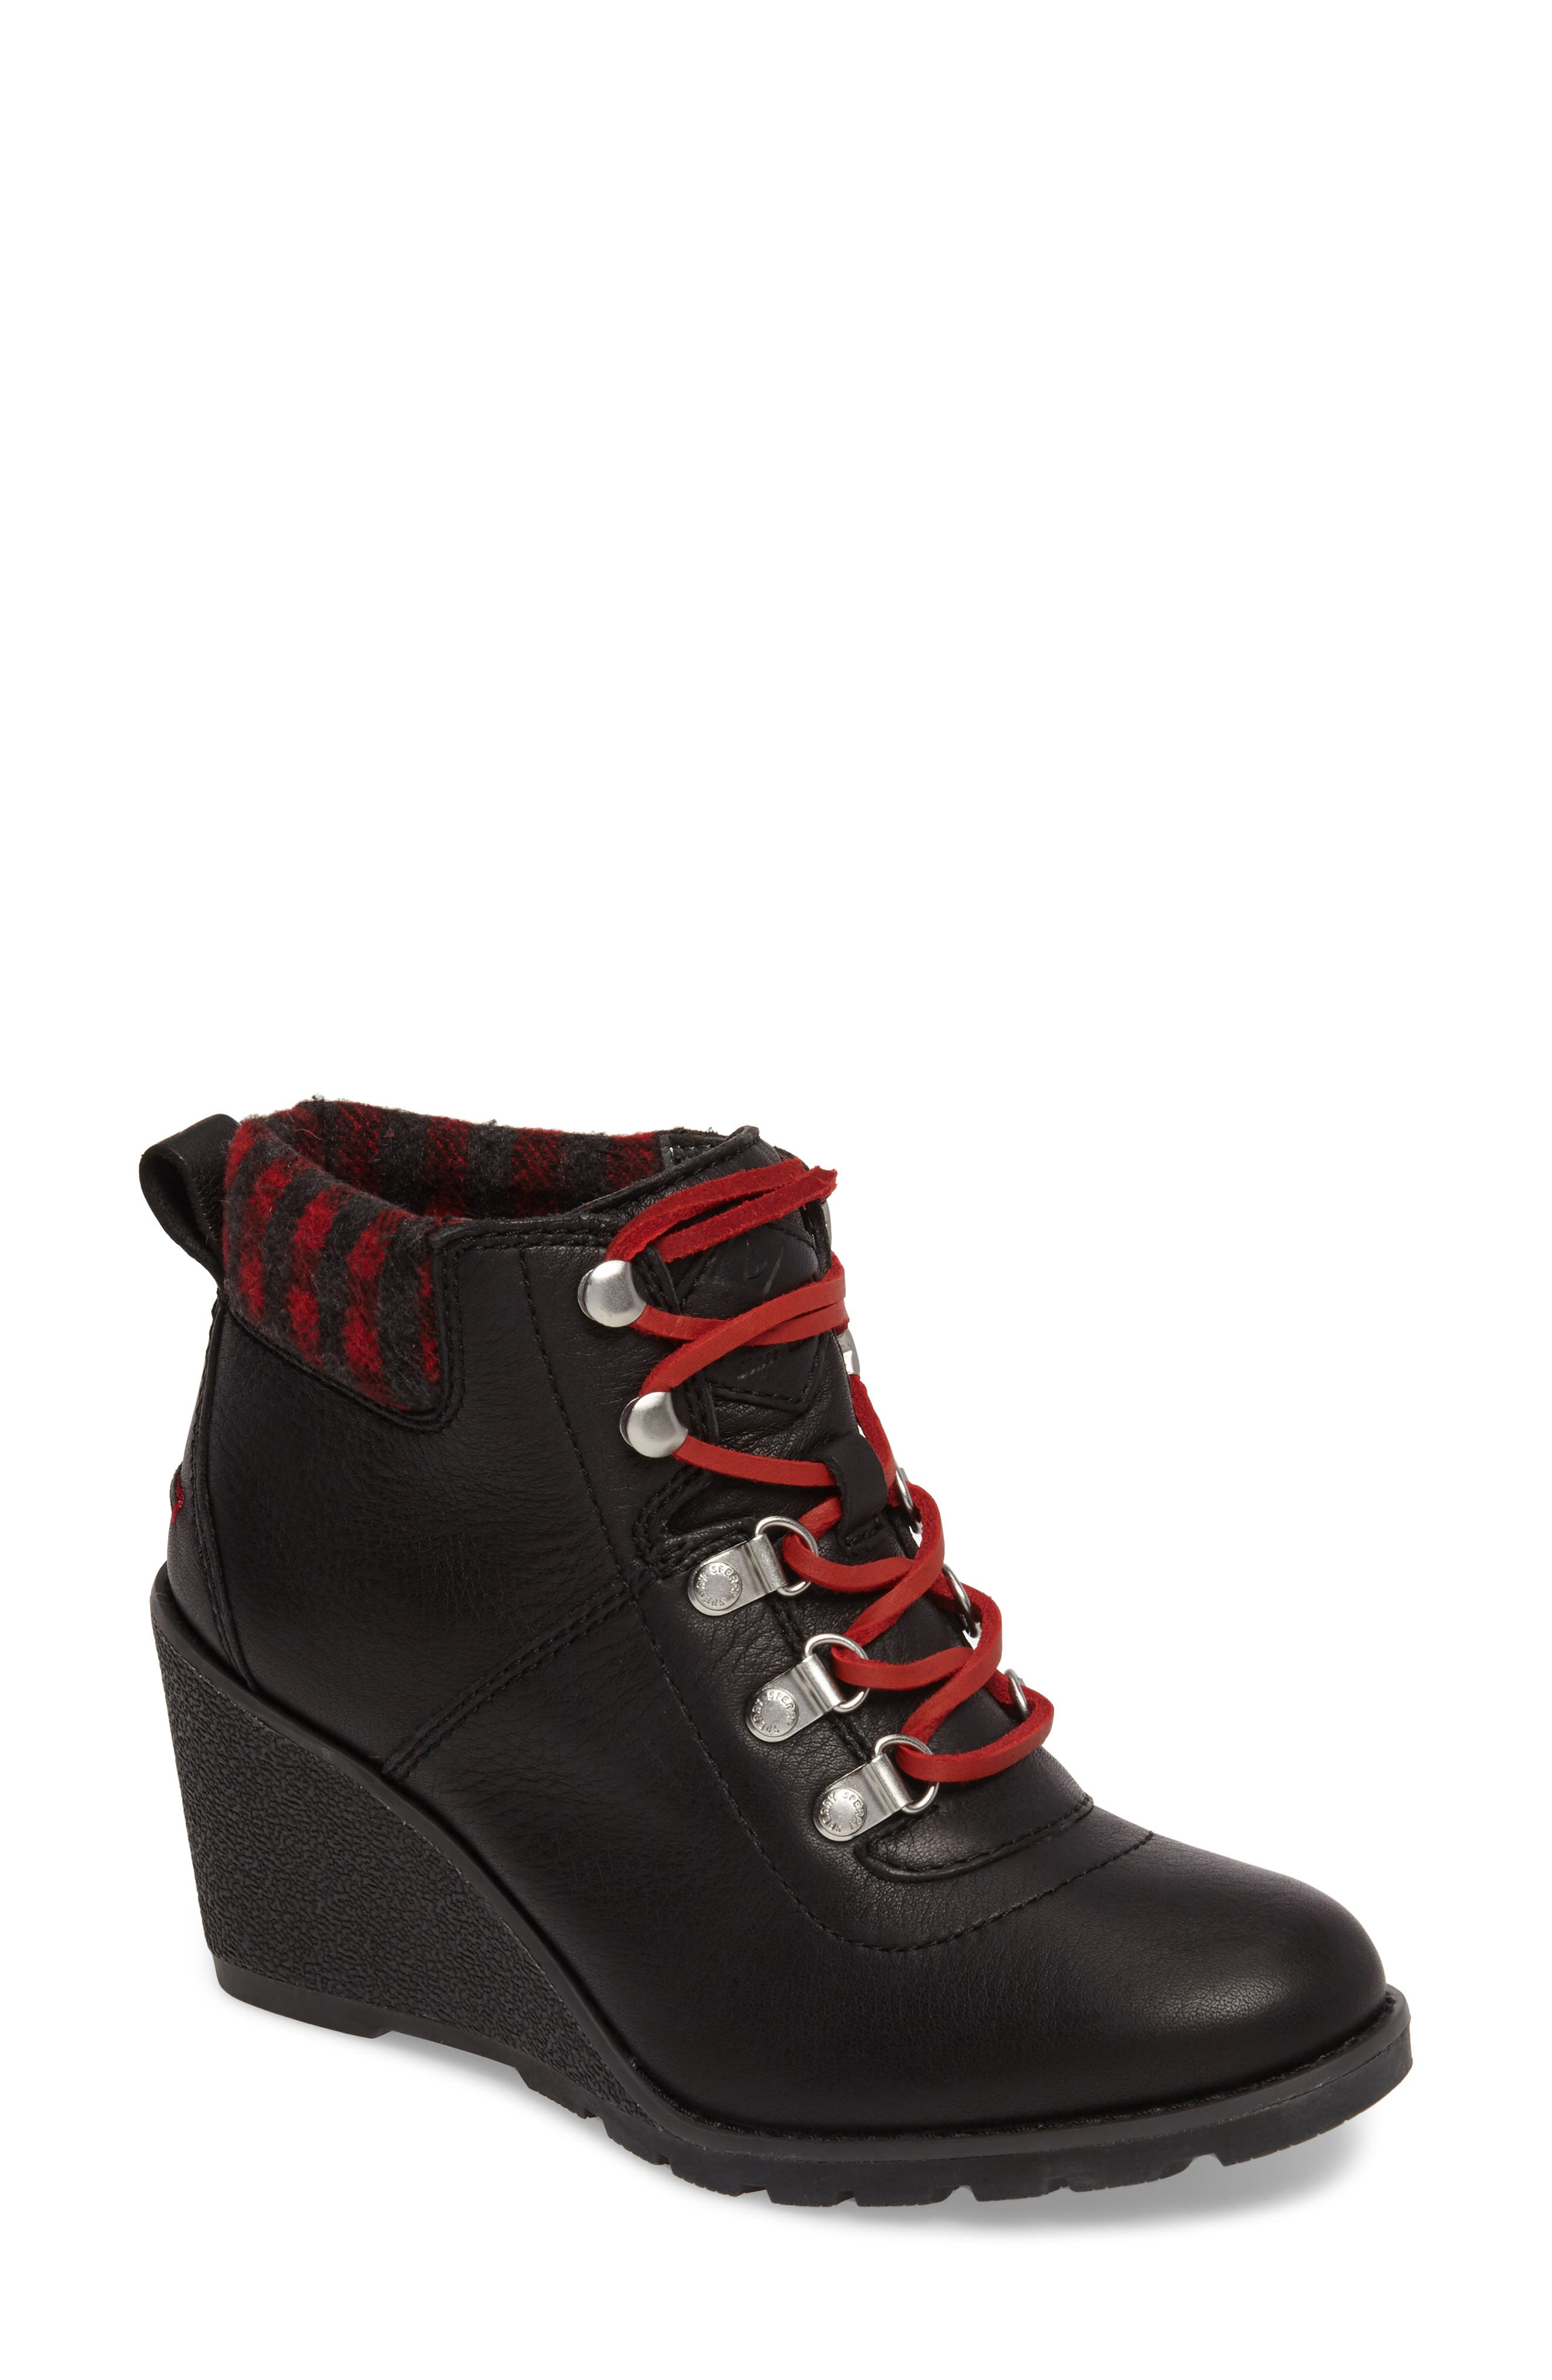 Top-Sider<sup>®</sup> Celeste Bliss Wedge Boot,                         Main,                         color, Black Leather